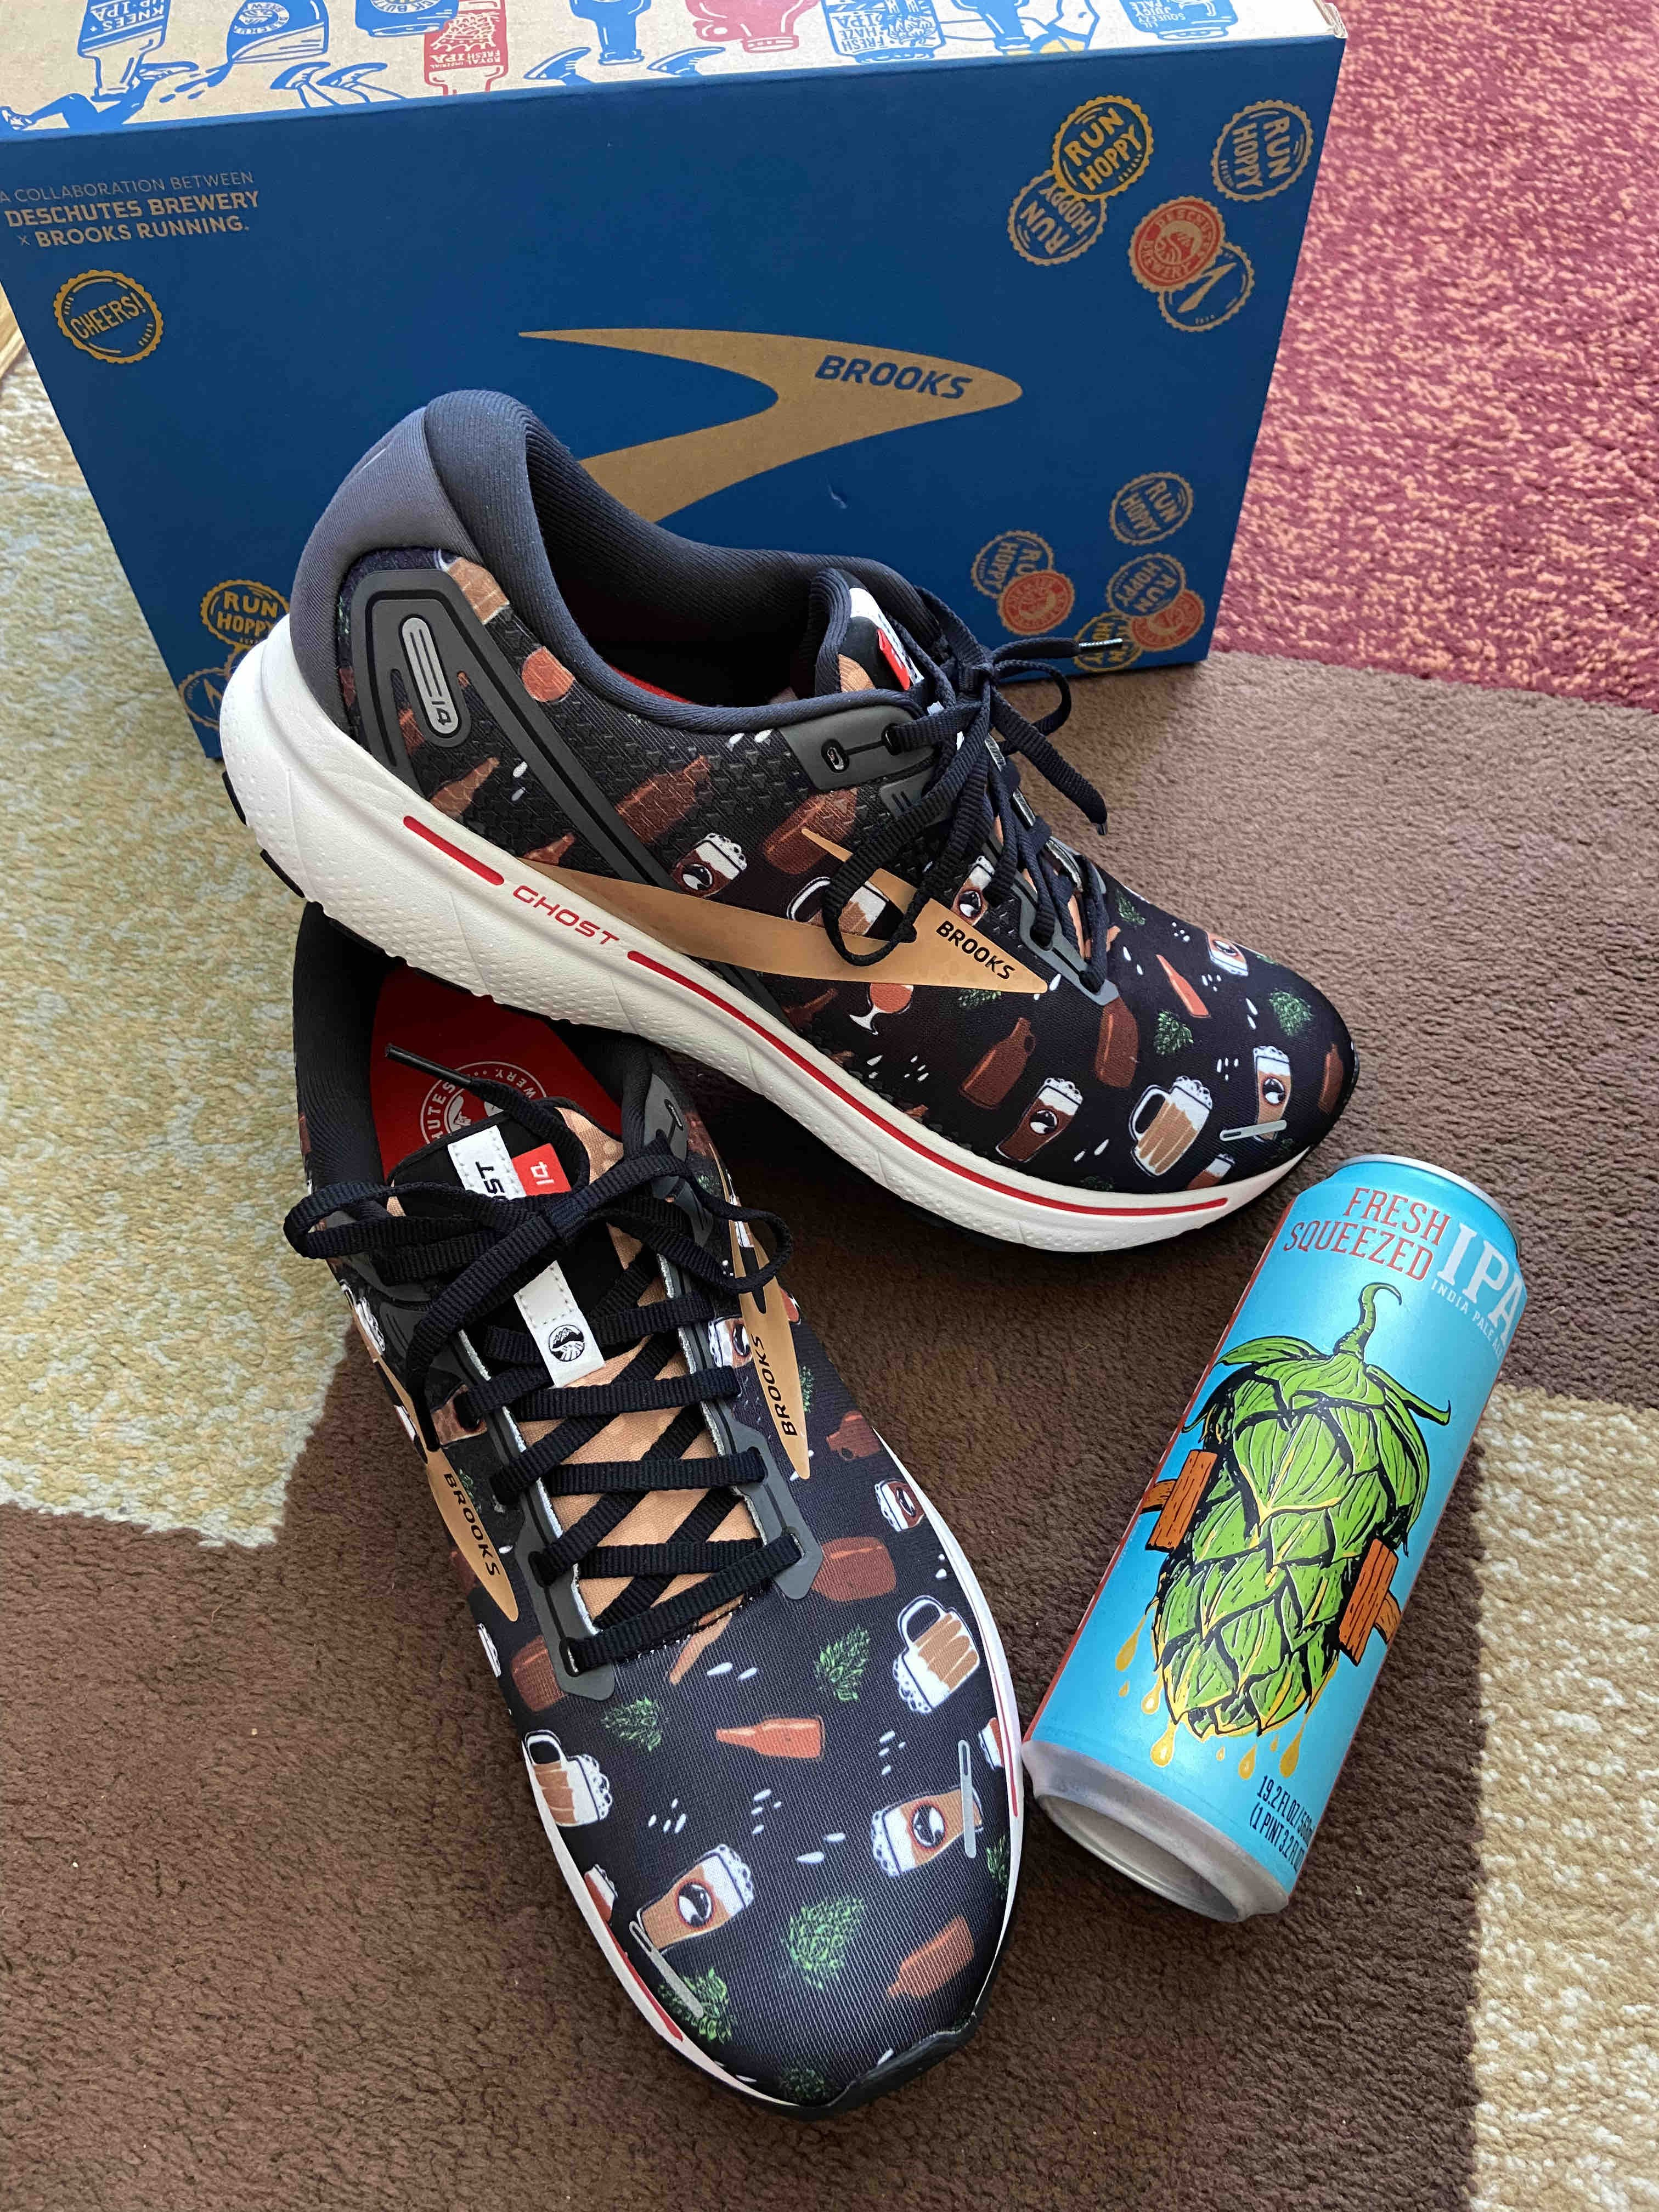 Deschutes Brewery and Brooks Running Deschutes themed Run Hoppy Ghost 14 Road Running Shoes and a 19.2oz can of Fresh Squeezed IPA.